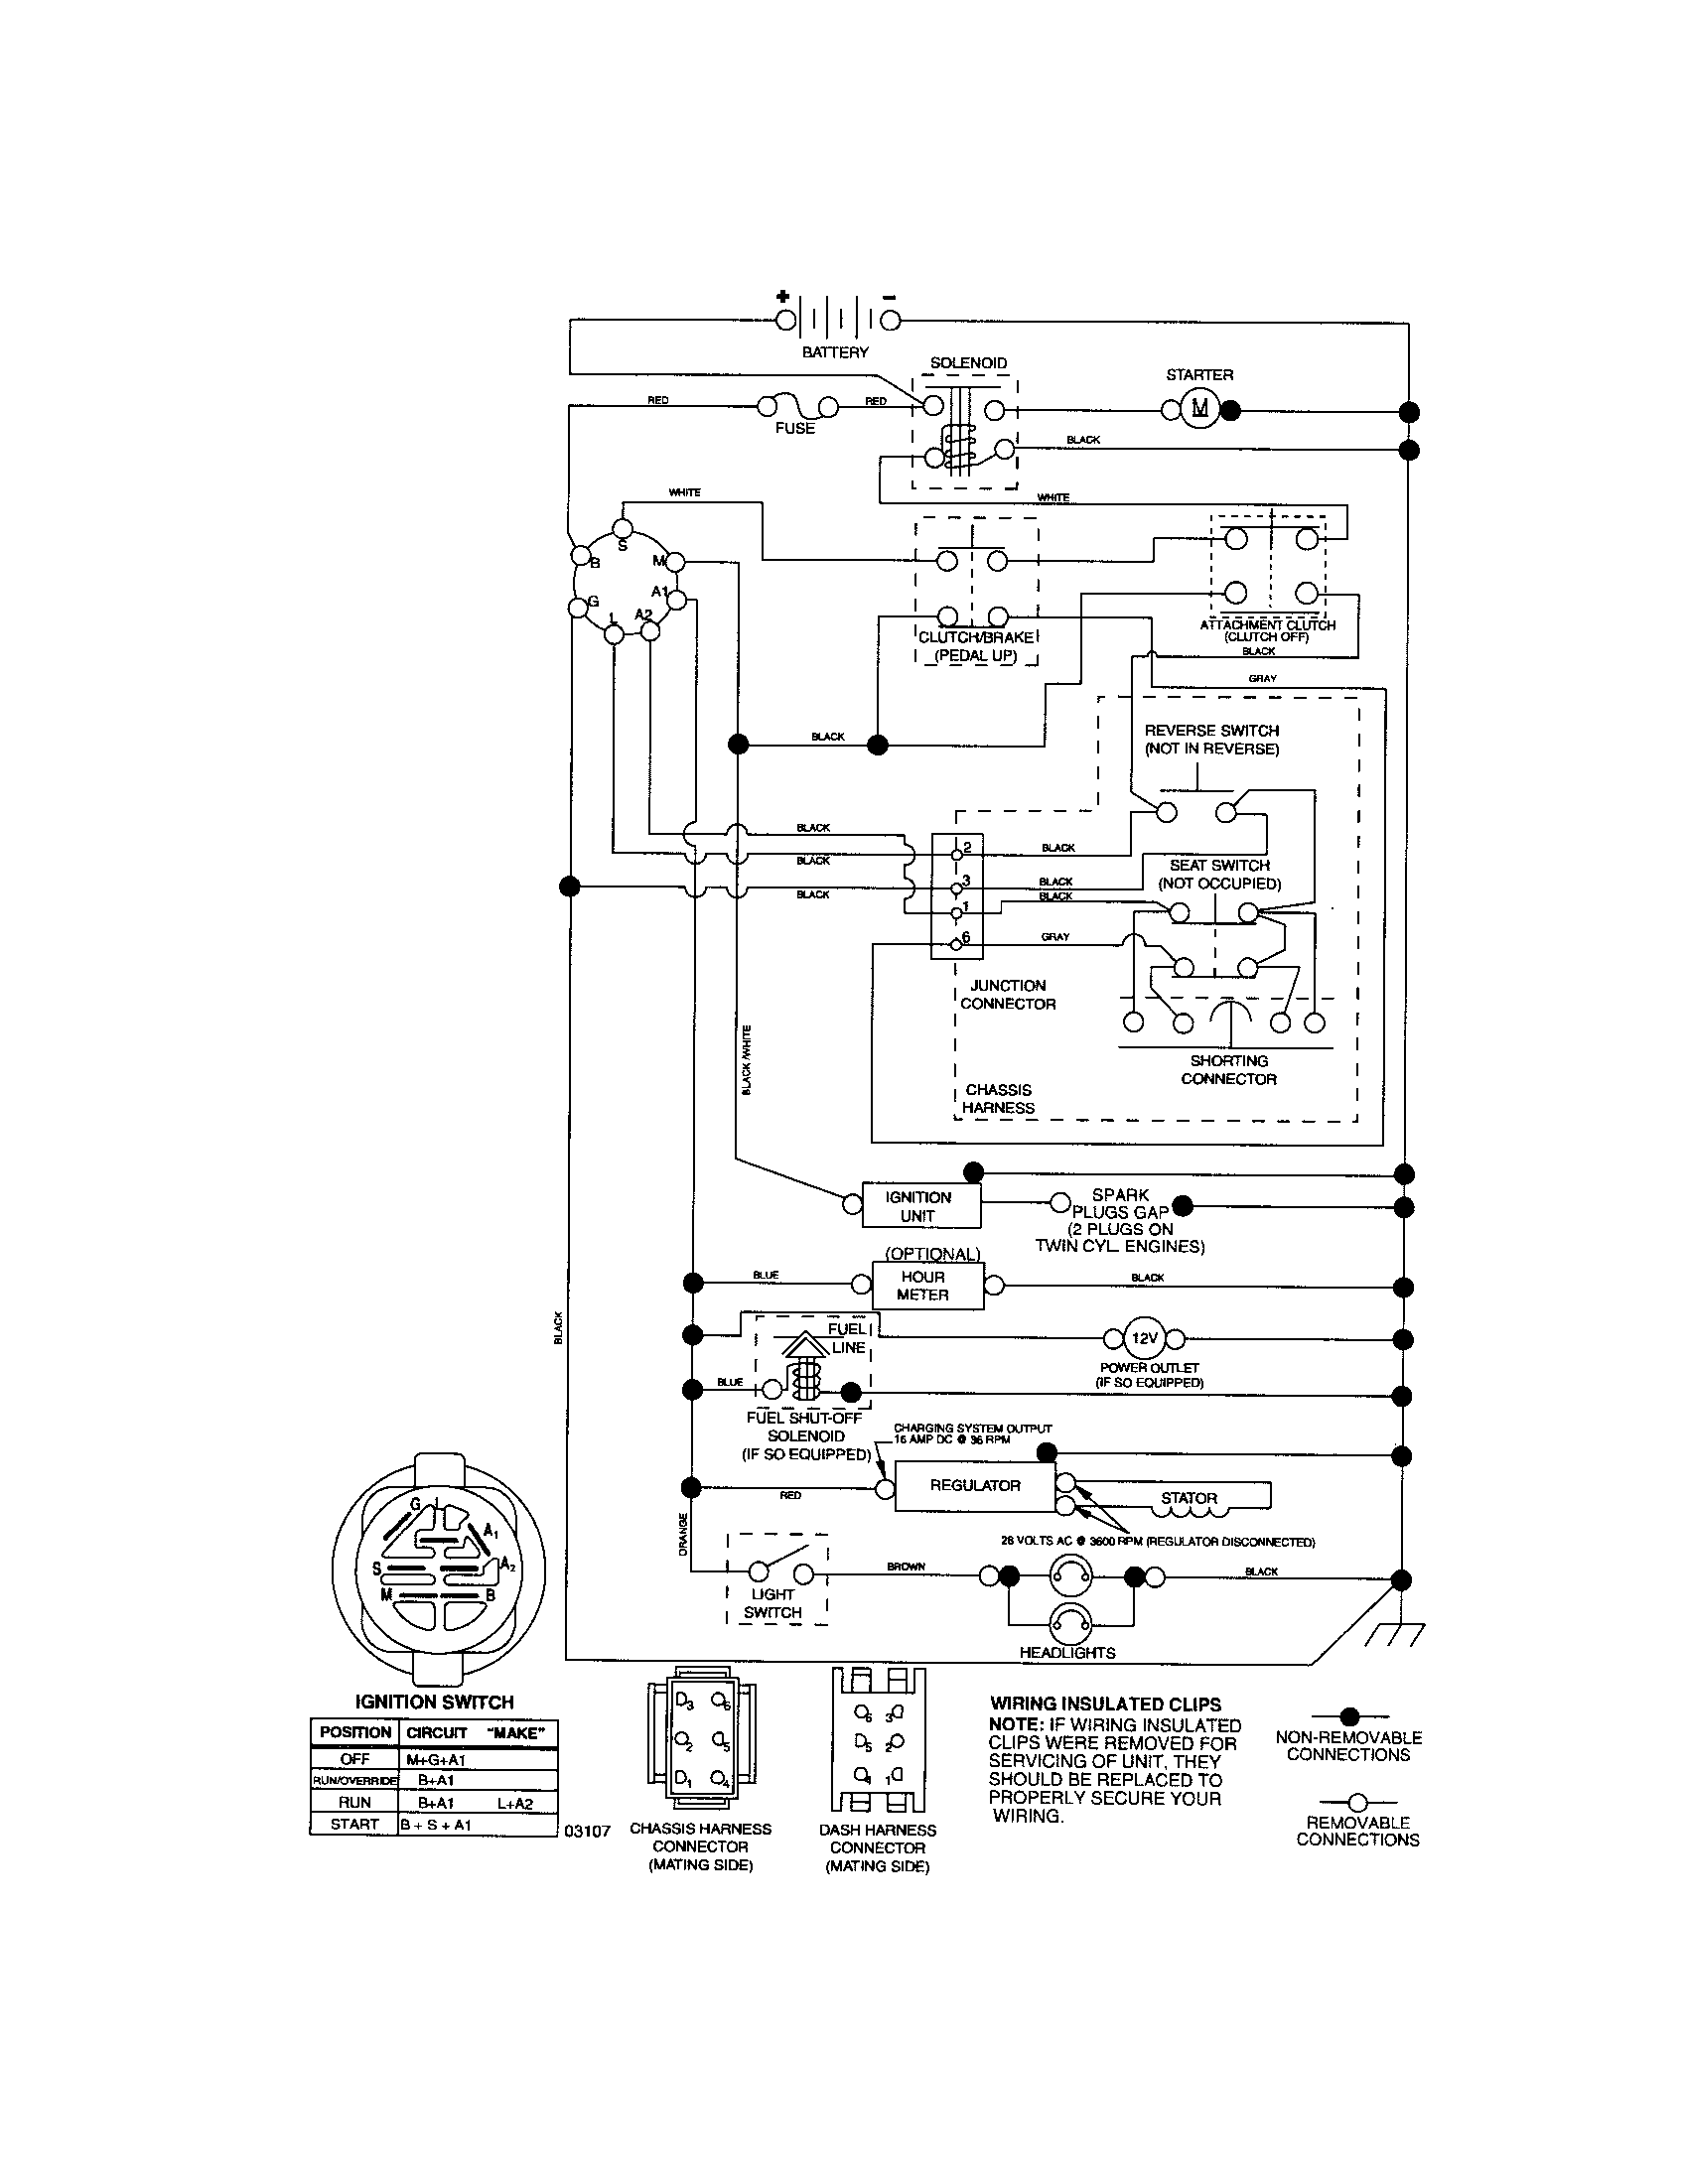 6af5f1447fd13c8443376822ddc1e105 craftsman riding mower electrical diagram wiring diagram briggs and stratton wiring diagram 21 hp at eliteediting.co